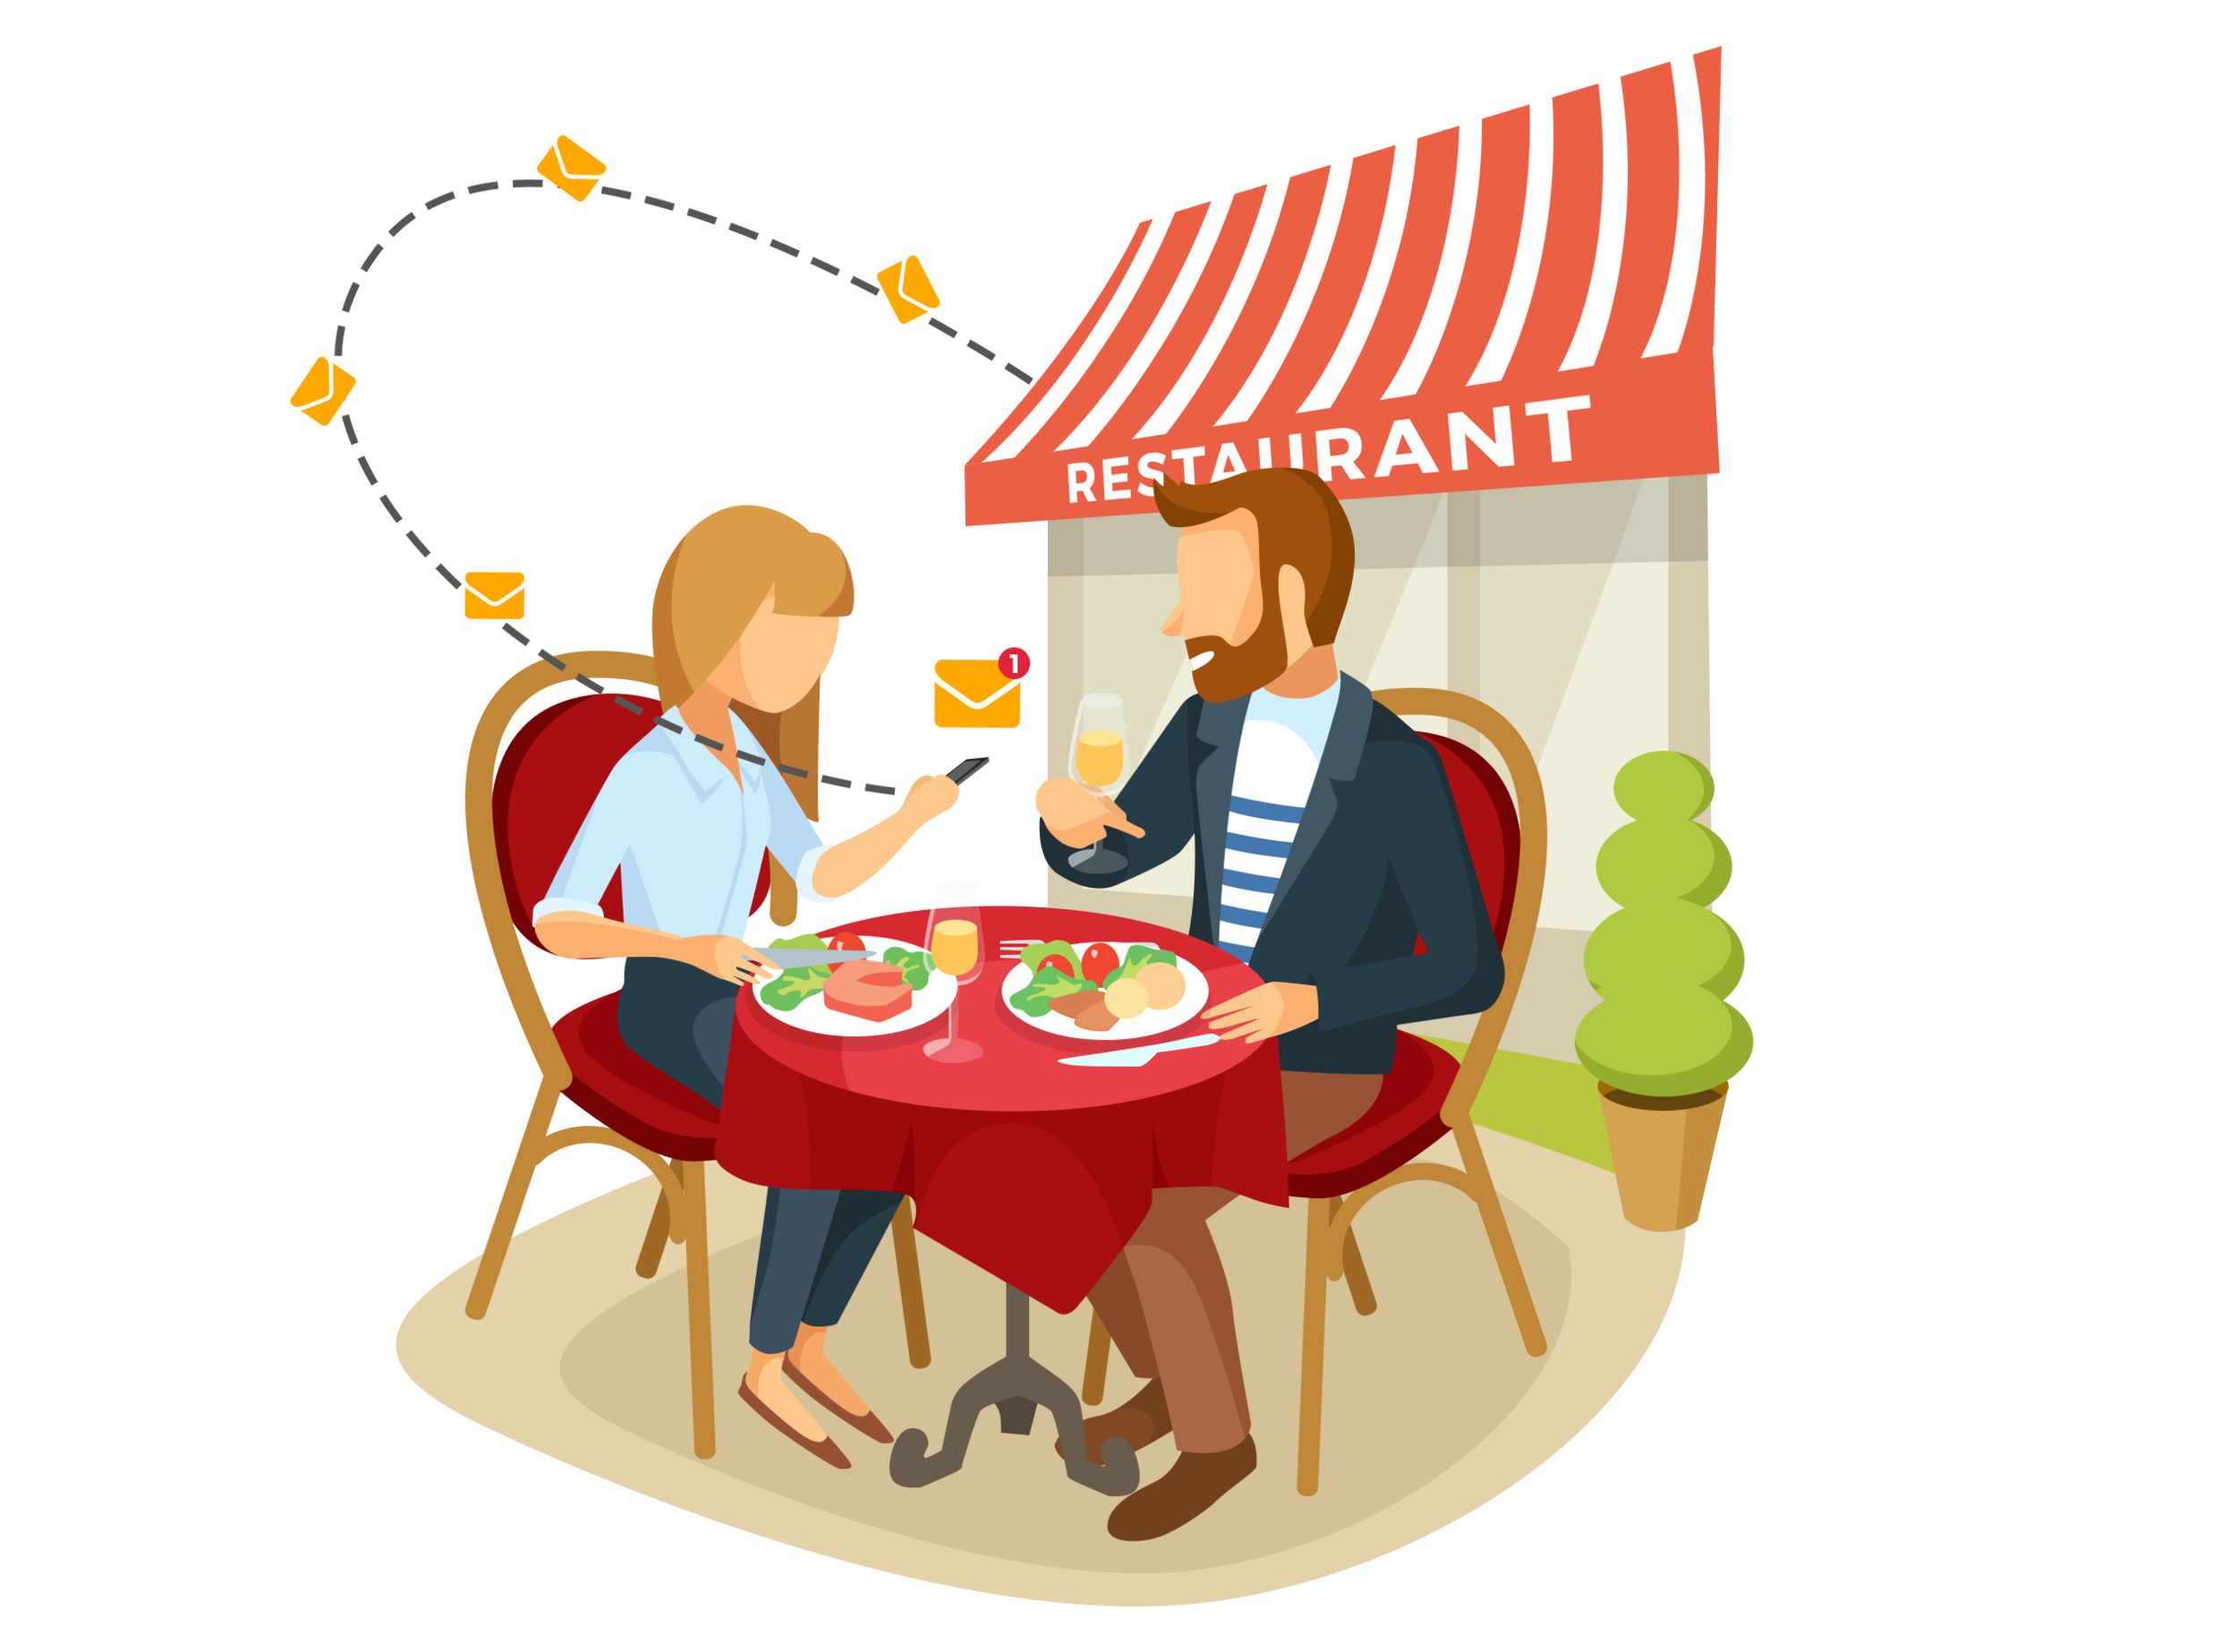 restaurant-guest-receiving-email.png